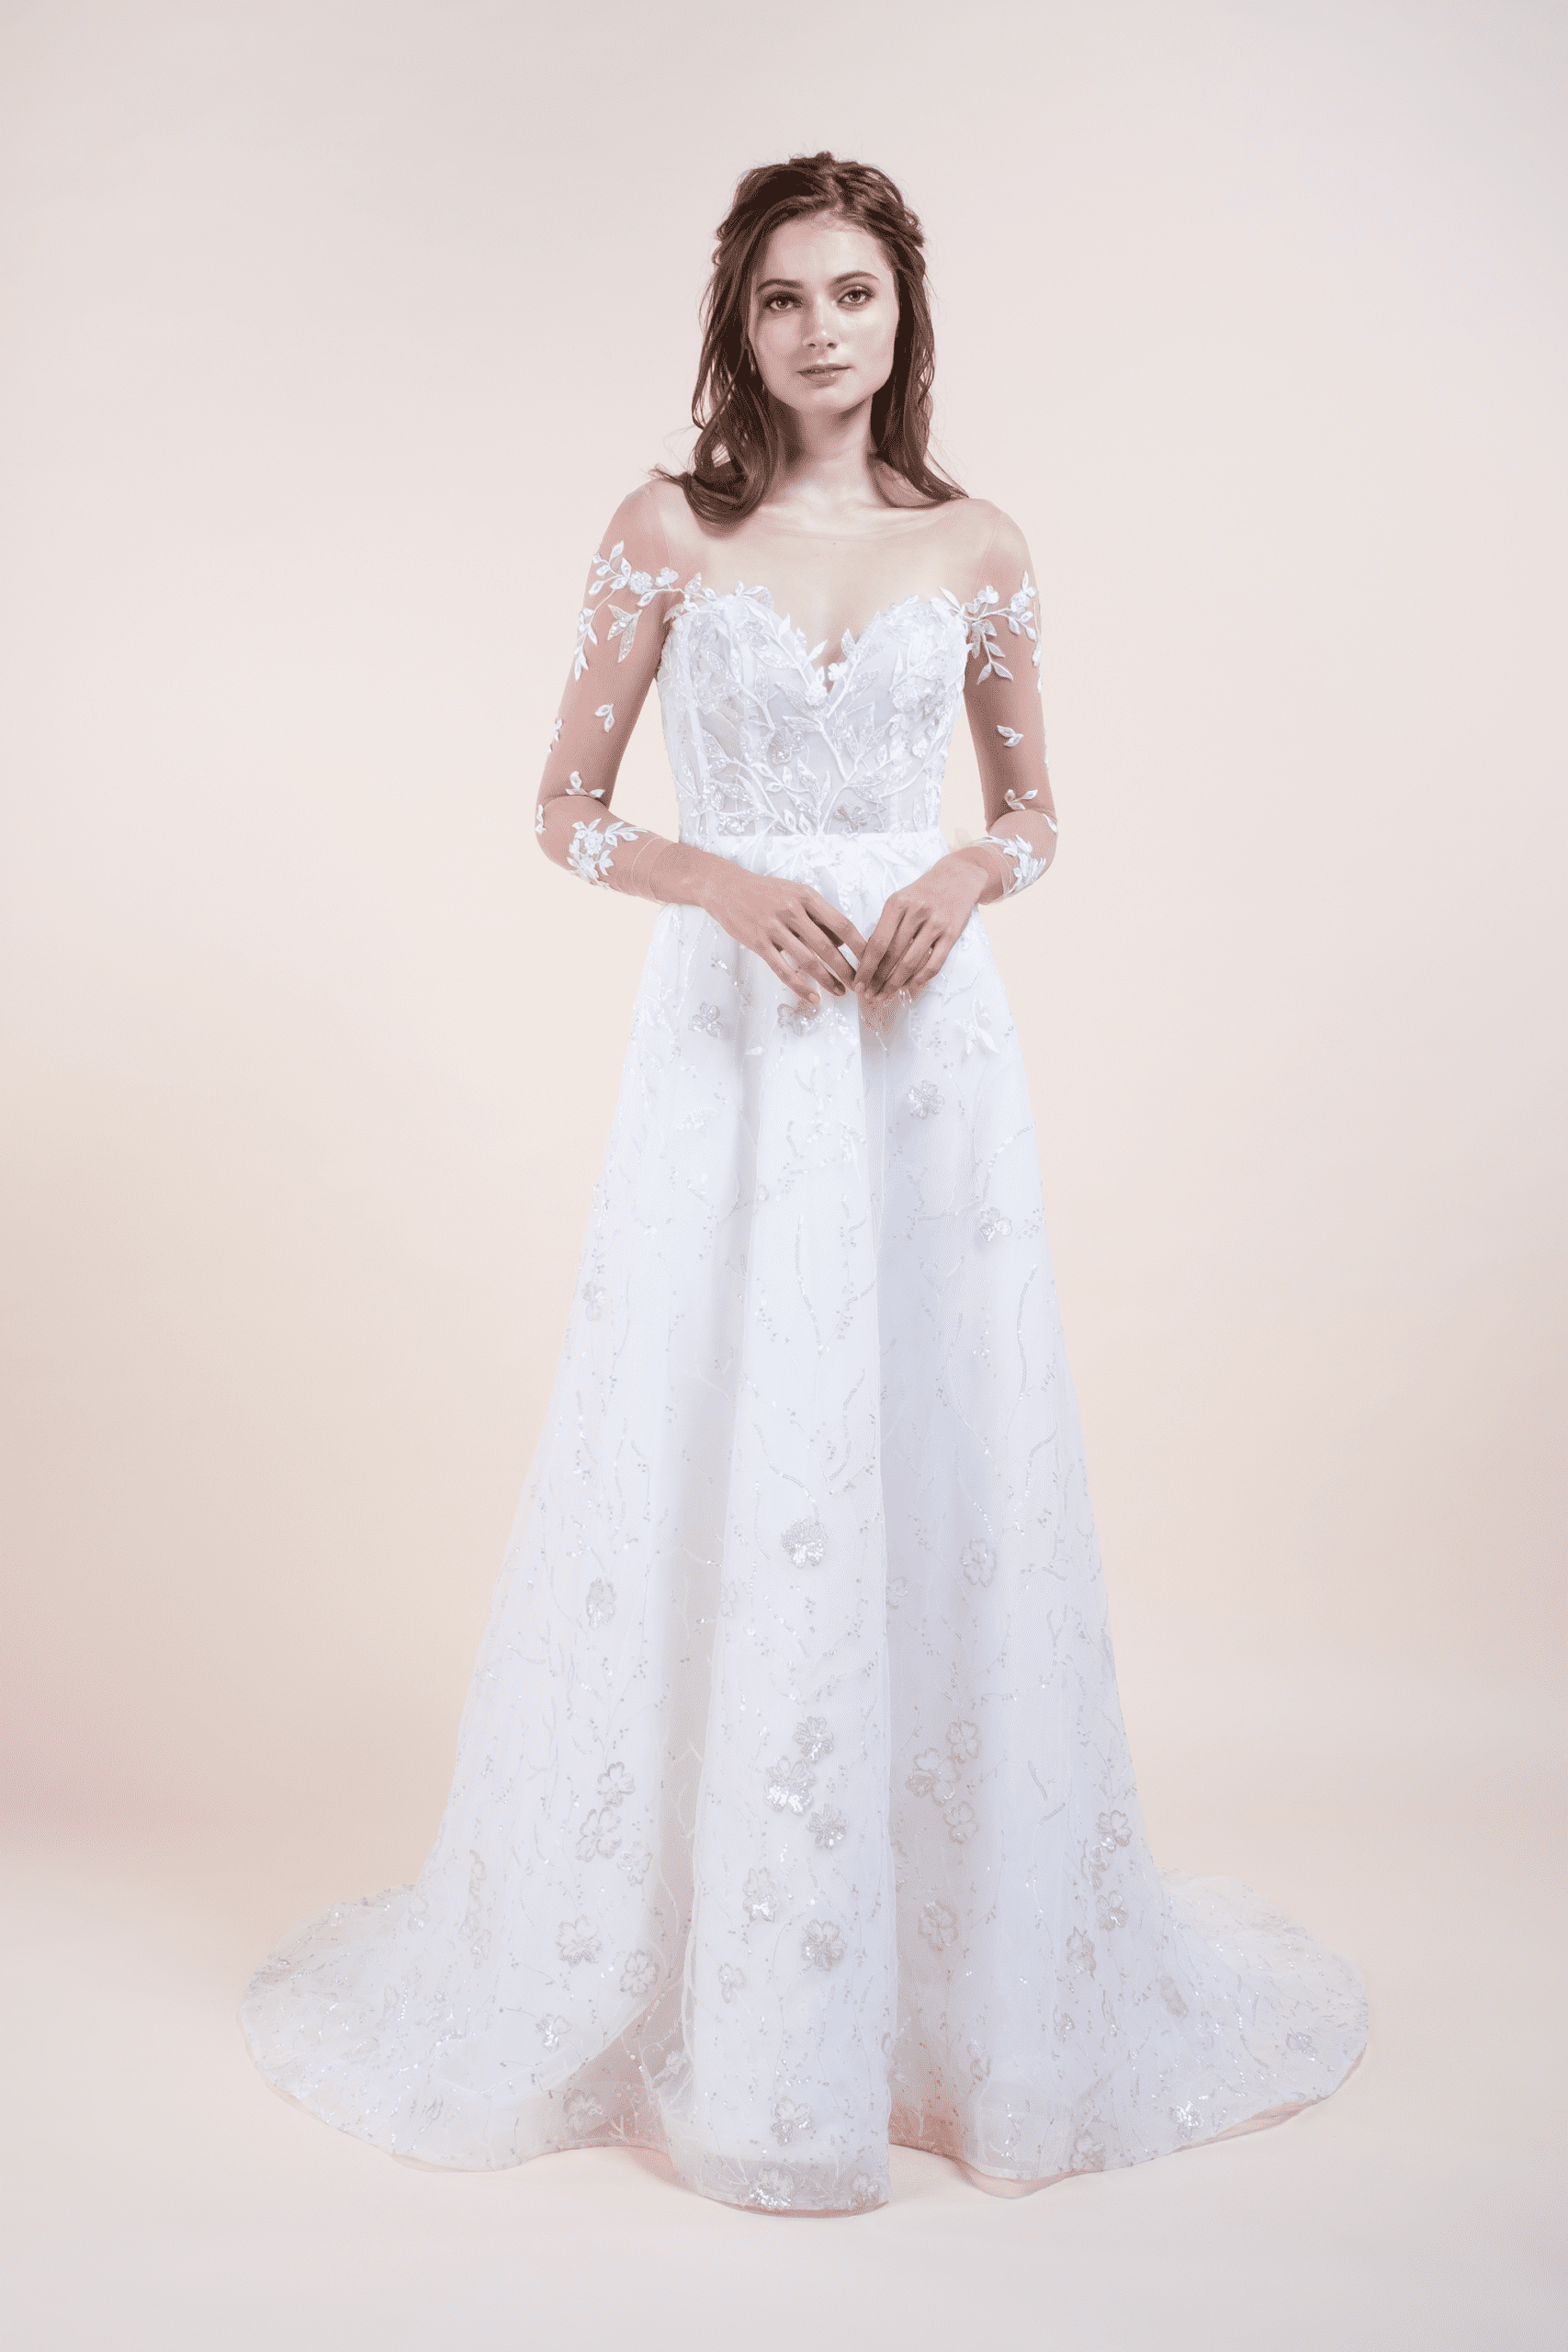 Riane-affordable-Bridal-Gown-for-rent-in-Singapore